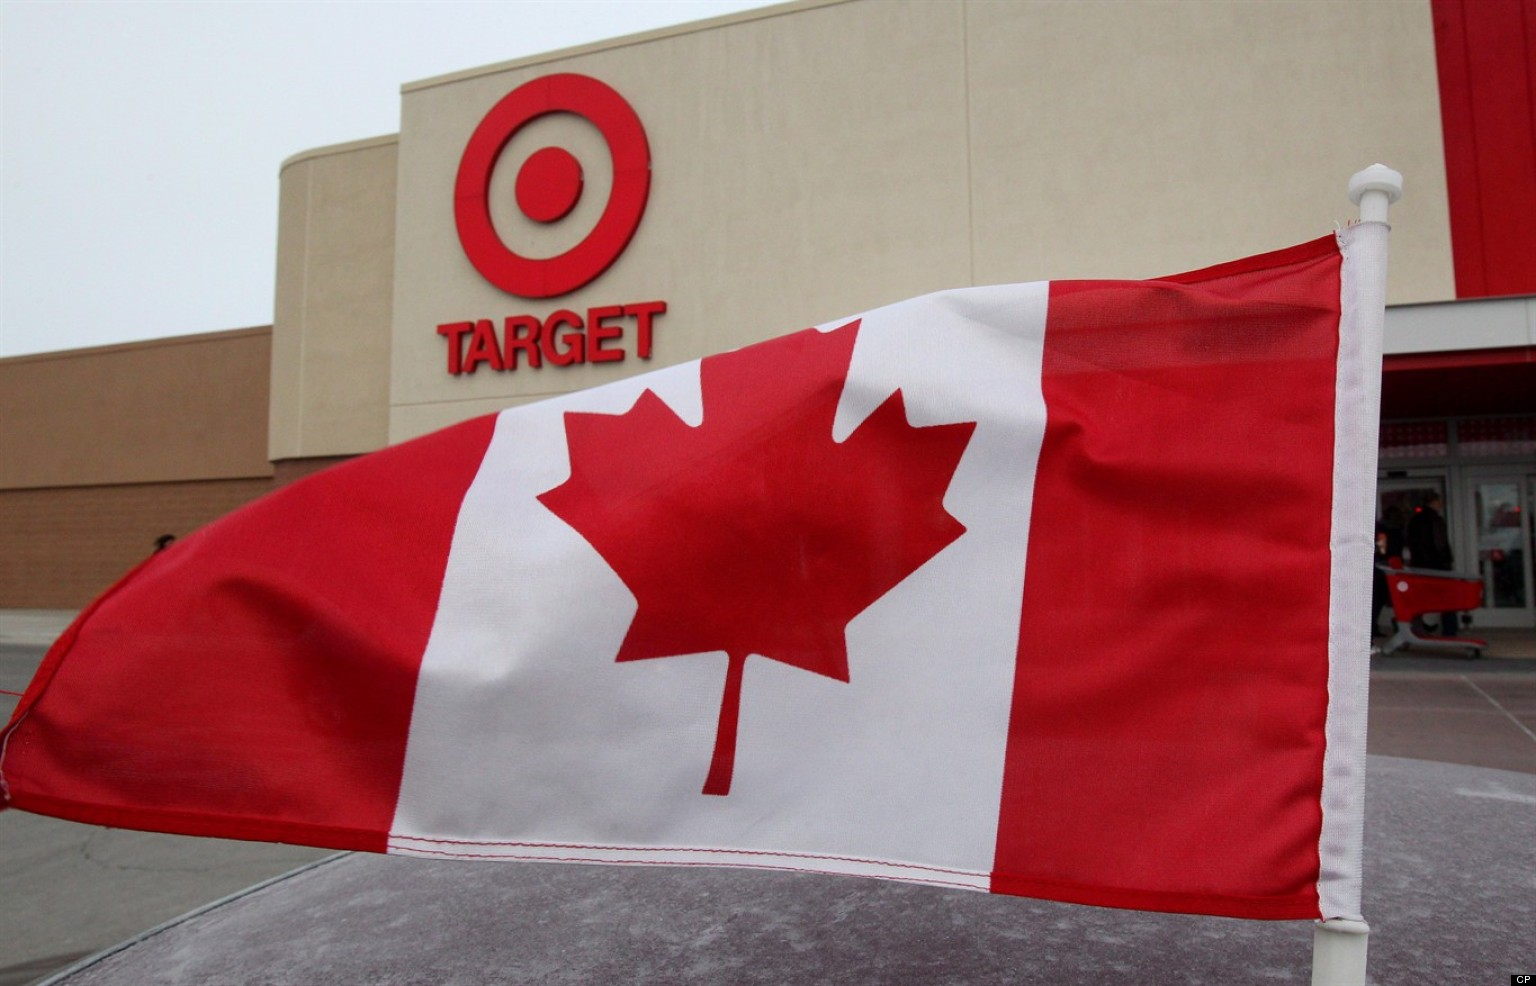 target in canada No wonder target got crushed in canada walmart's sales per square foot in canada were five times higher than the bullseye-logoed retailer in 2013.